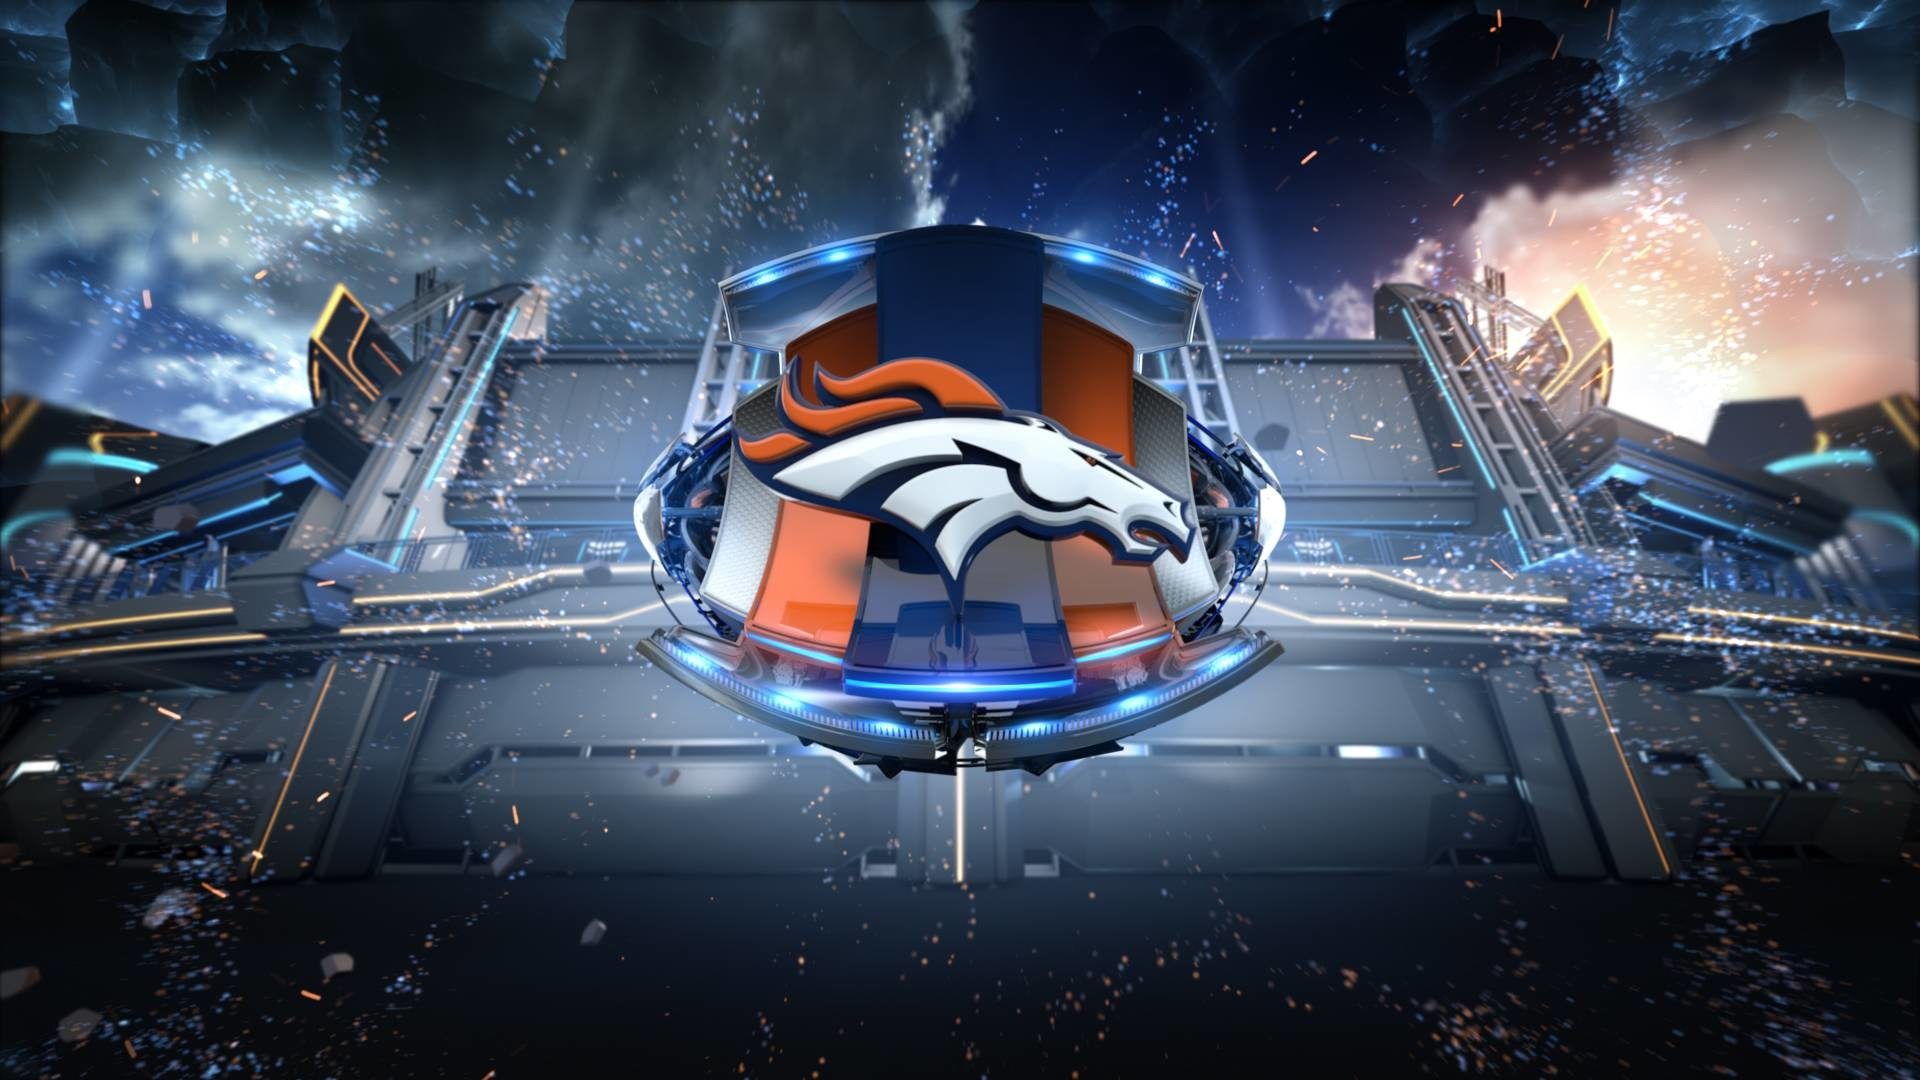 1920x1080 Denver Broncos Background Wallpaper | HD Wallpaper and Download .